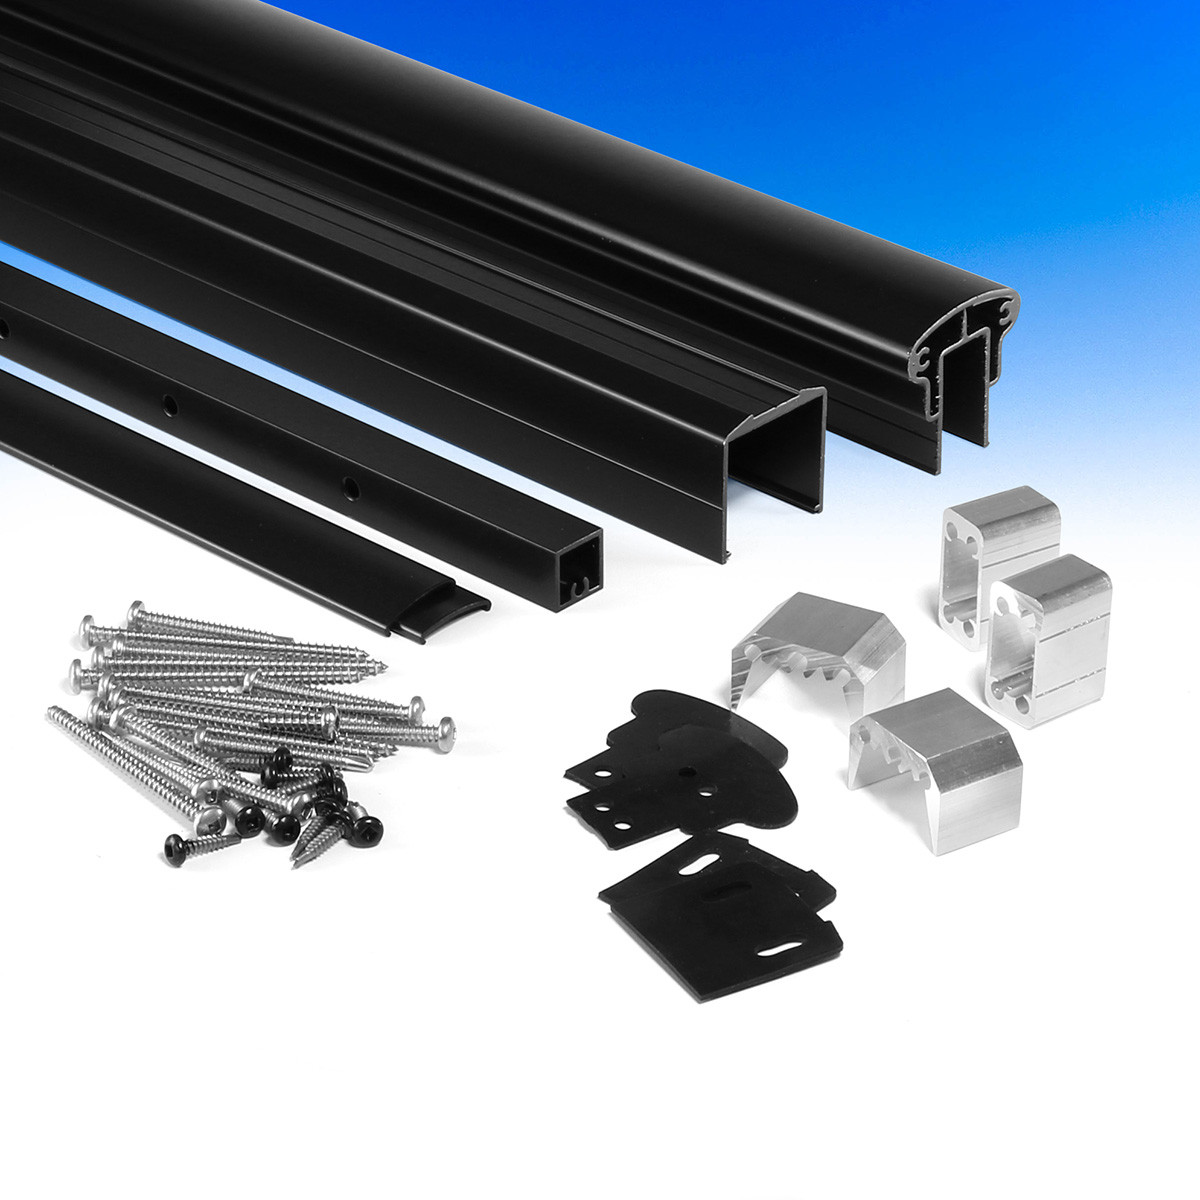 DesignRail Aluminum Level Rail Kit by Feeney - Black - Uninstalled - Package Contents